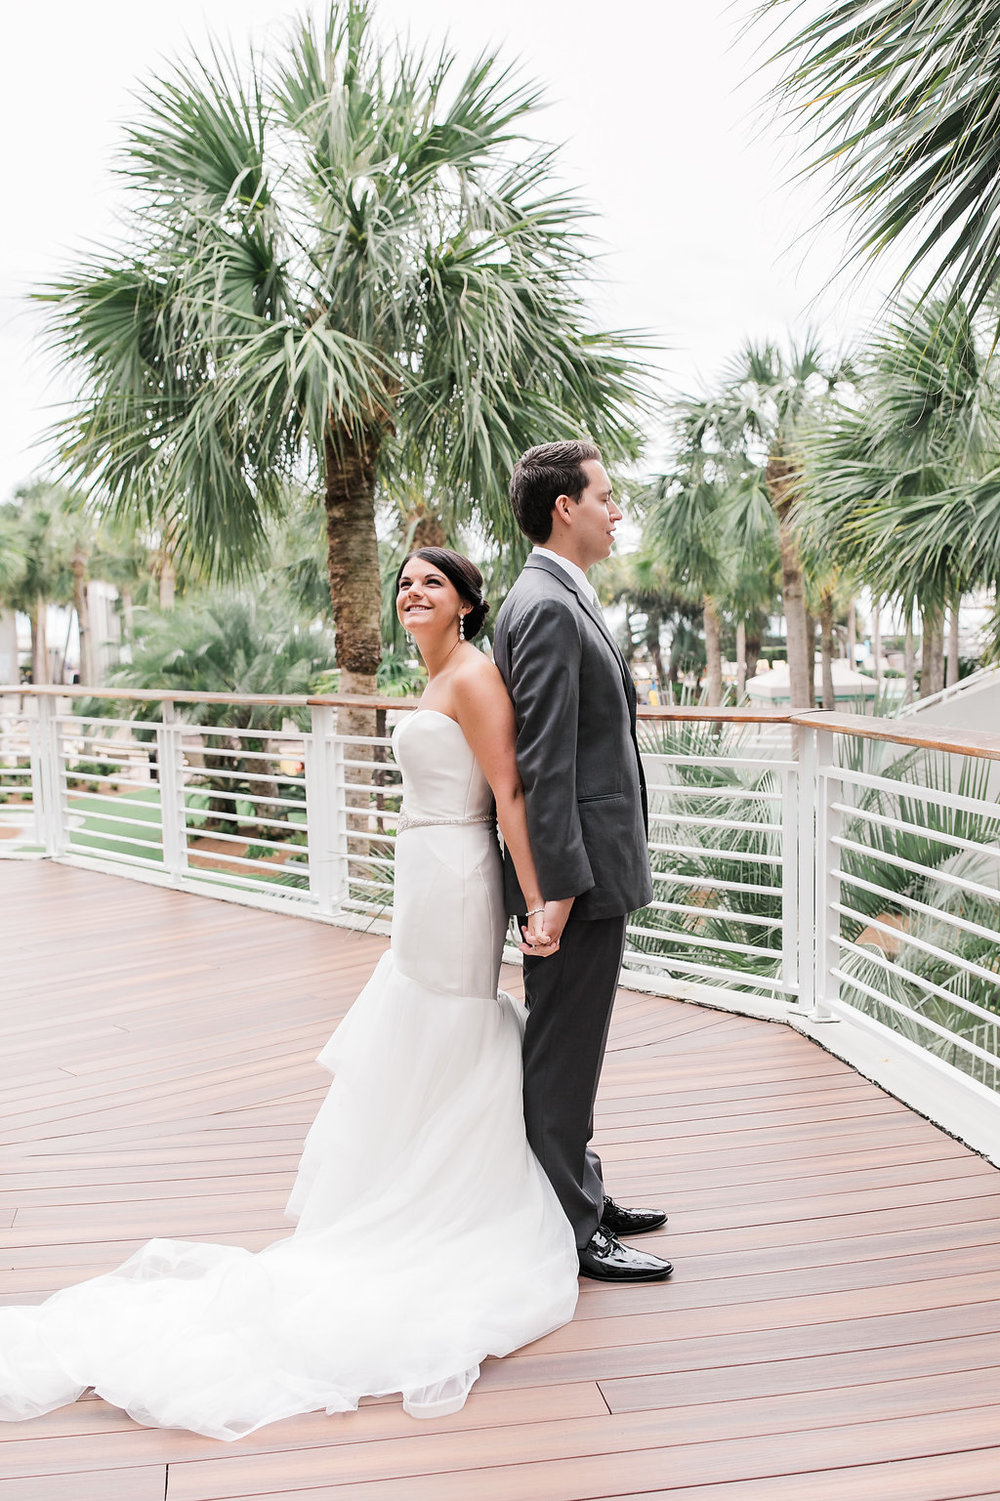 ivory-and-beau-bridal-boutique-jb-marie-photography-hannah-and-daniel-westin-hilton-head-island-wedding-hilton-head-island-florist-10.jpg